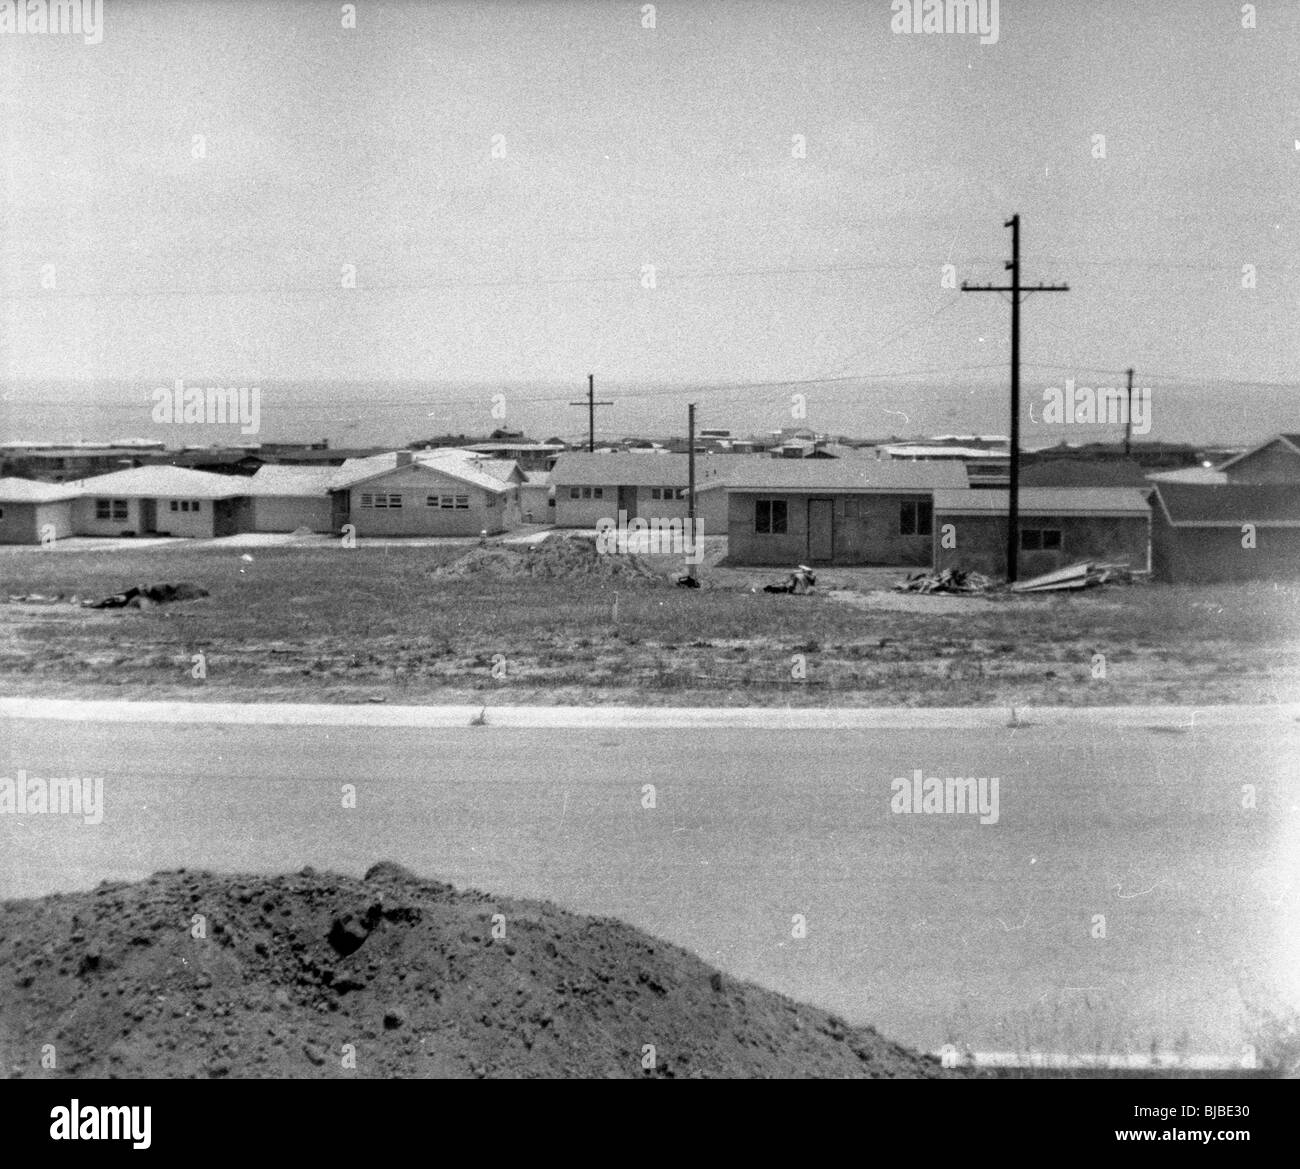 Tract homes under construction in the American southwest during the 1960s black and white horizontal - Stock Image